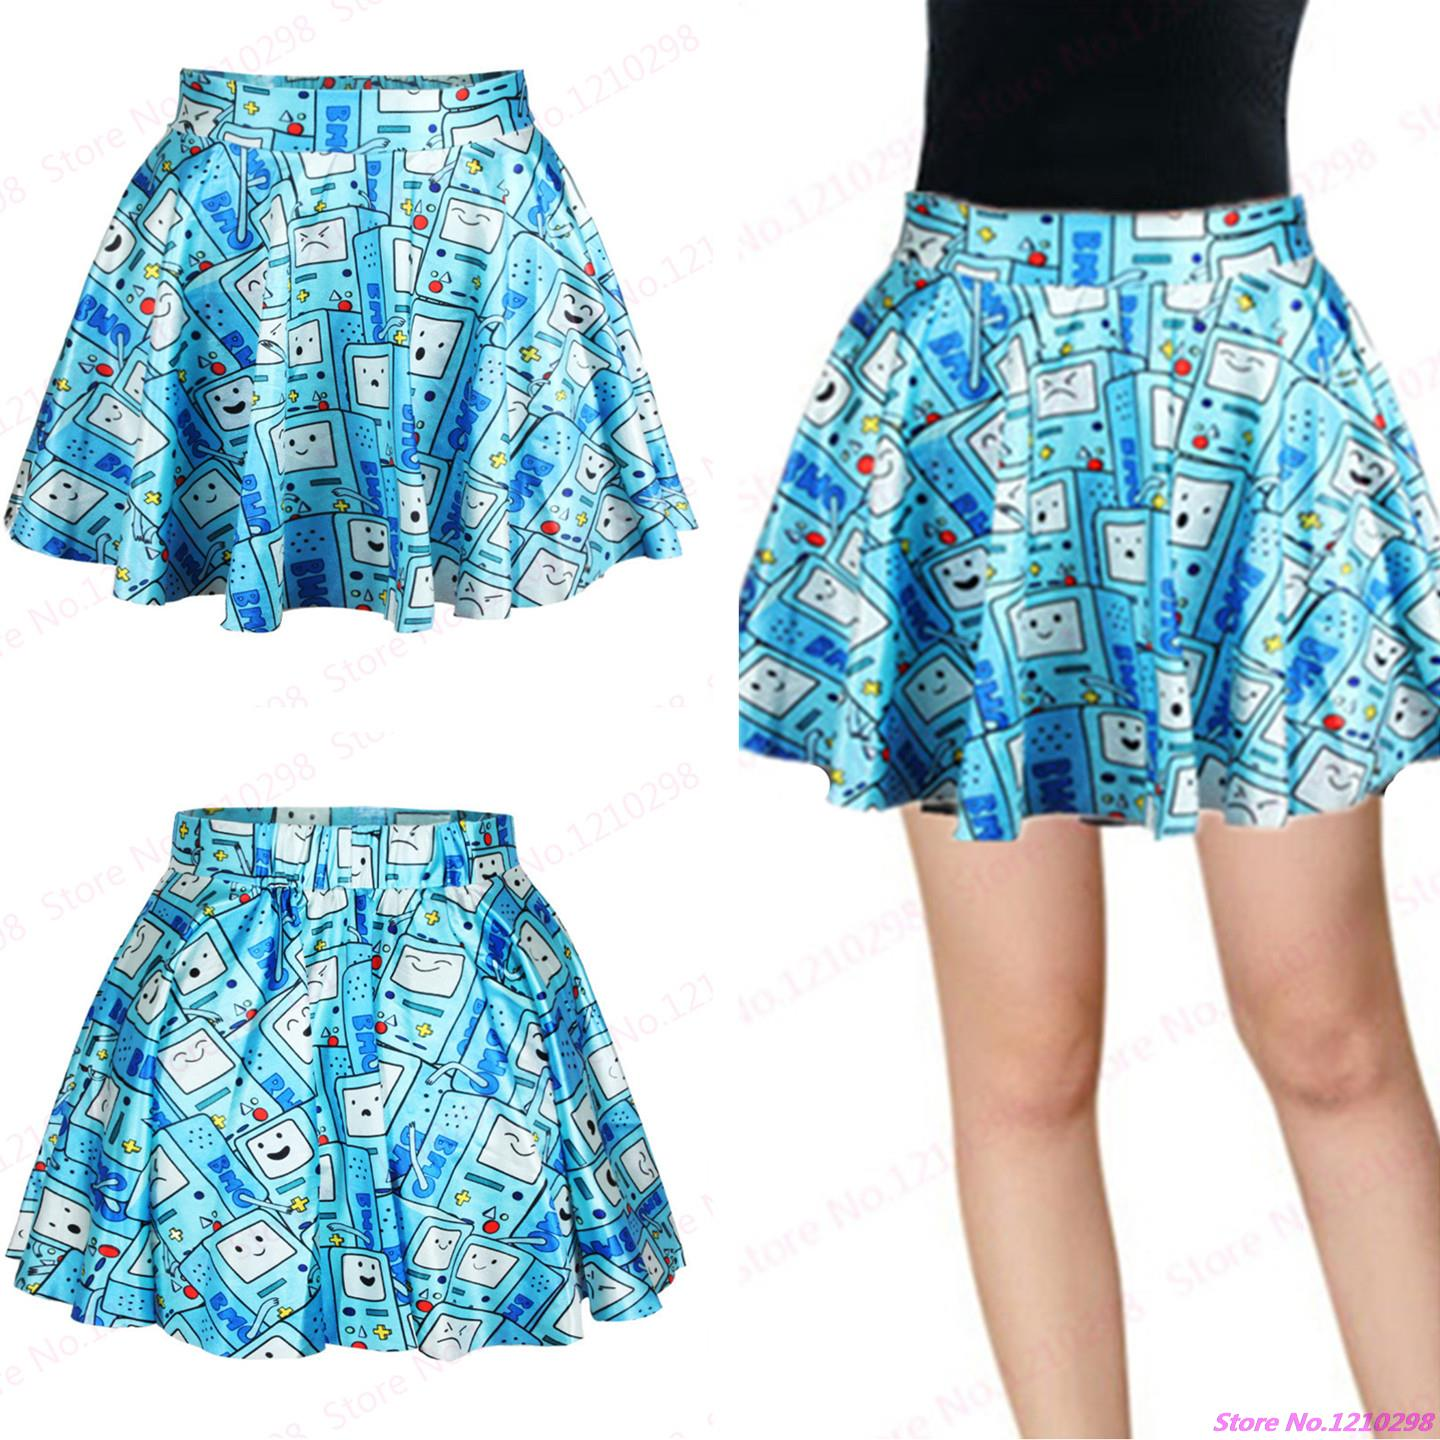 New Summer Nightclubs Sport Skirts Exercise Gym Pleated Pettiskirt Fitness Tennis Mini Skirts Blue Robots Skirts